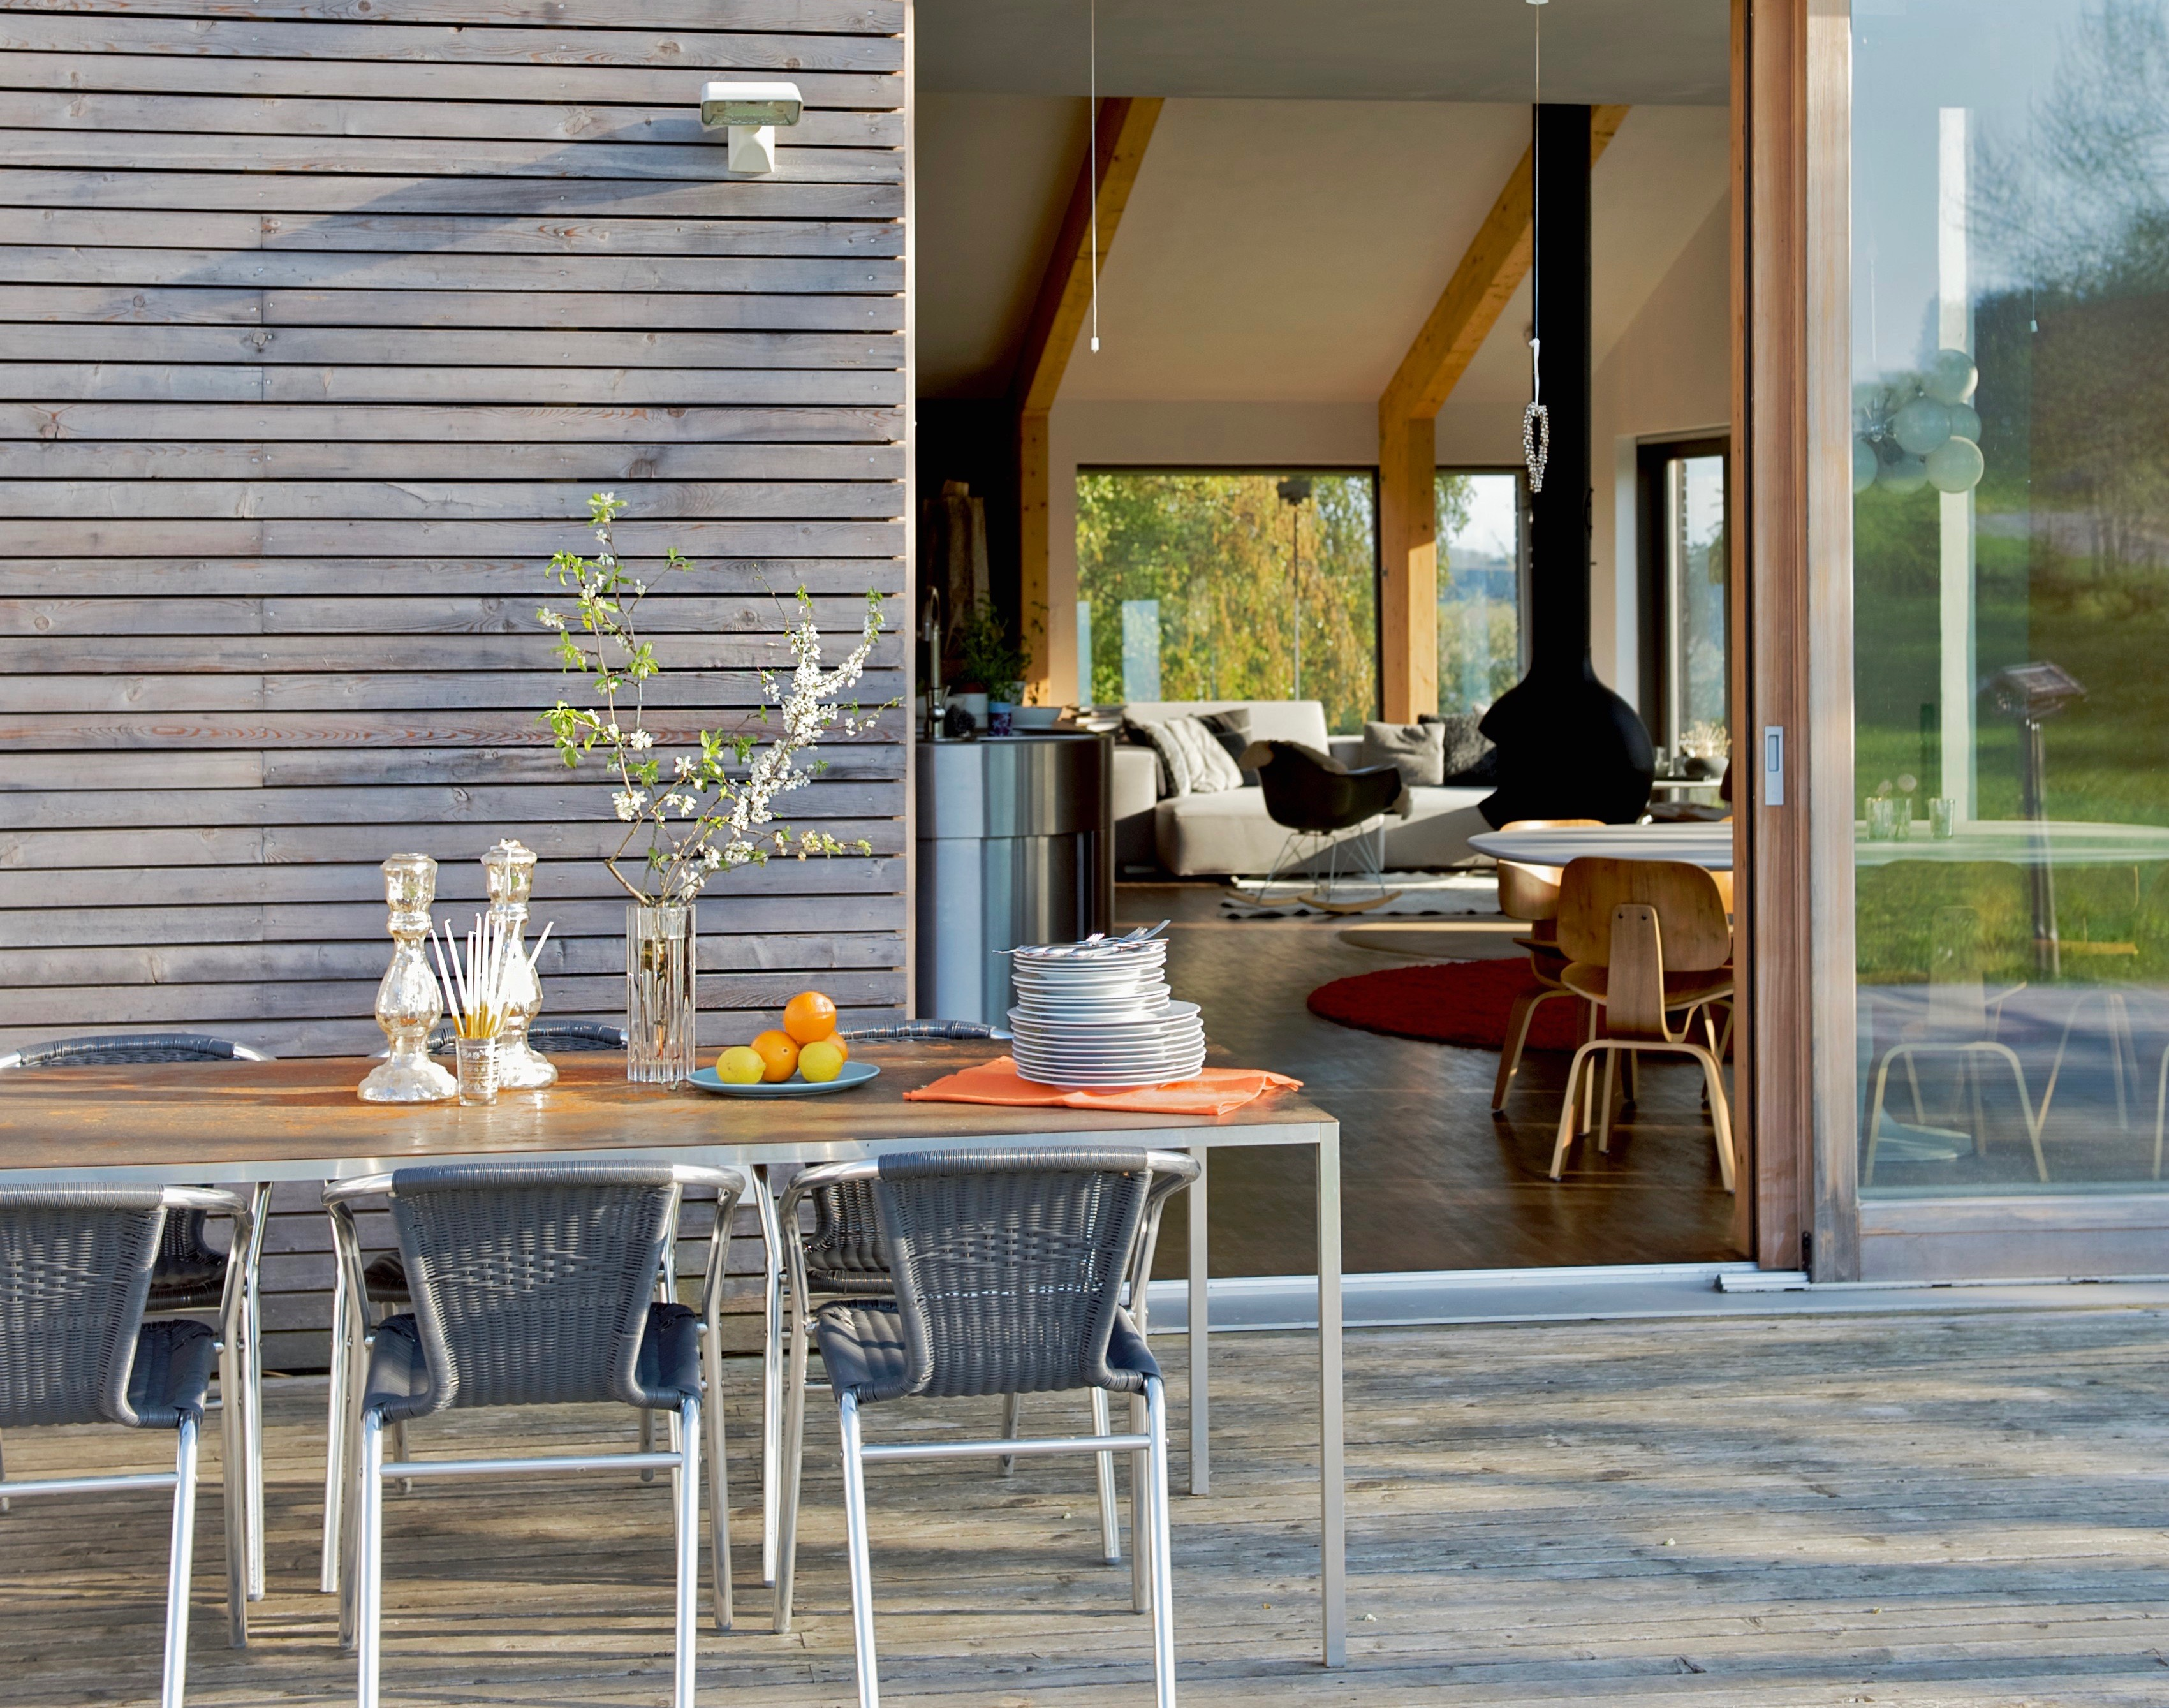 Table and chairs on terrace of contemporary house with exterior wood cladding and view of living room through open terrace door